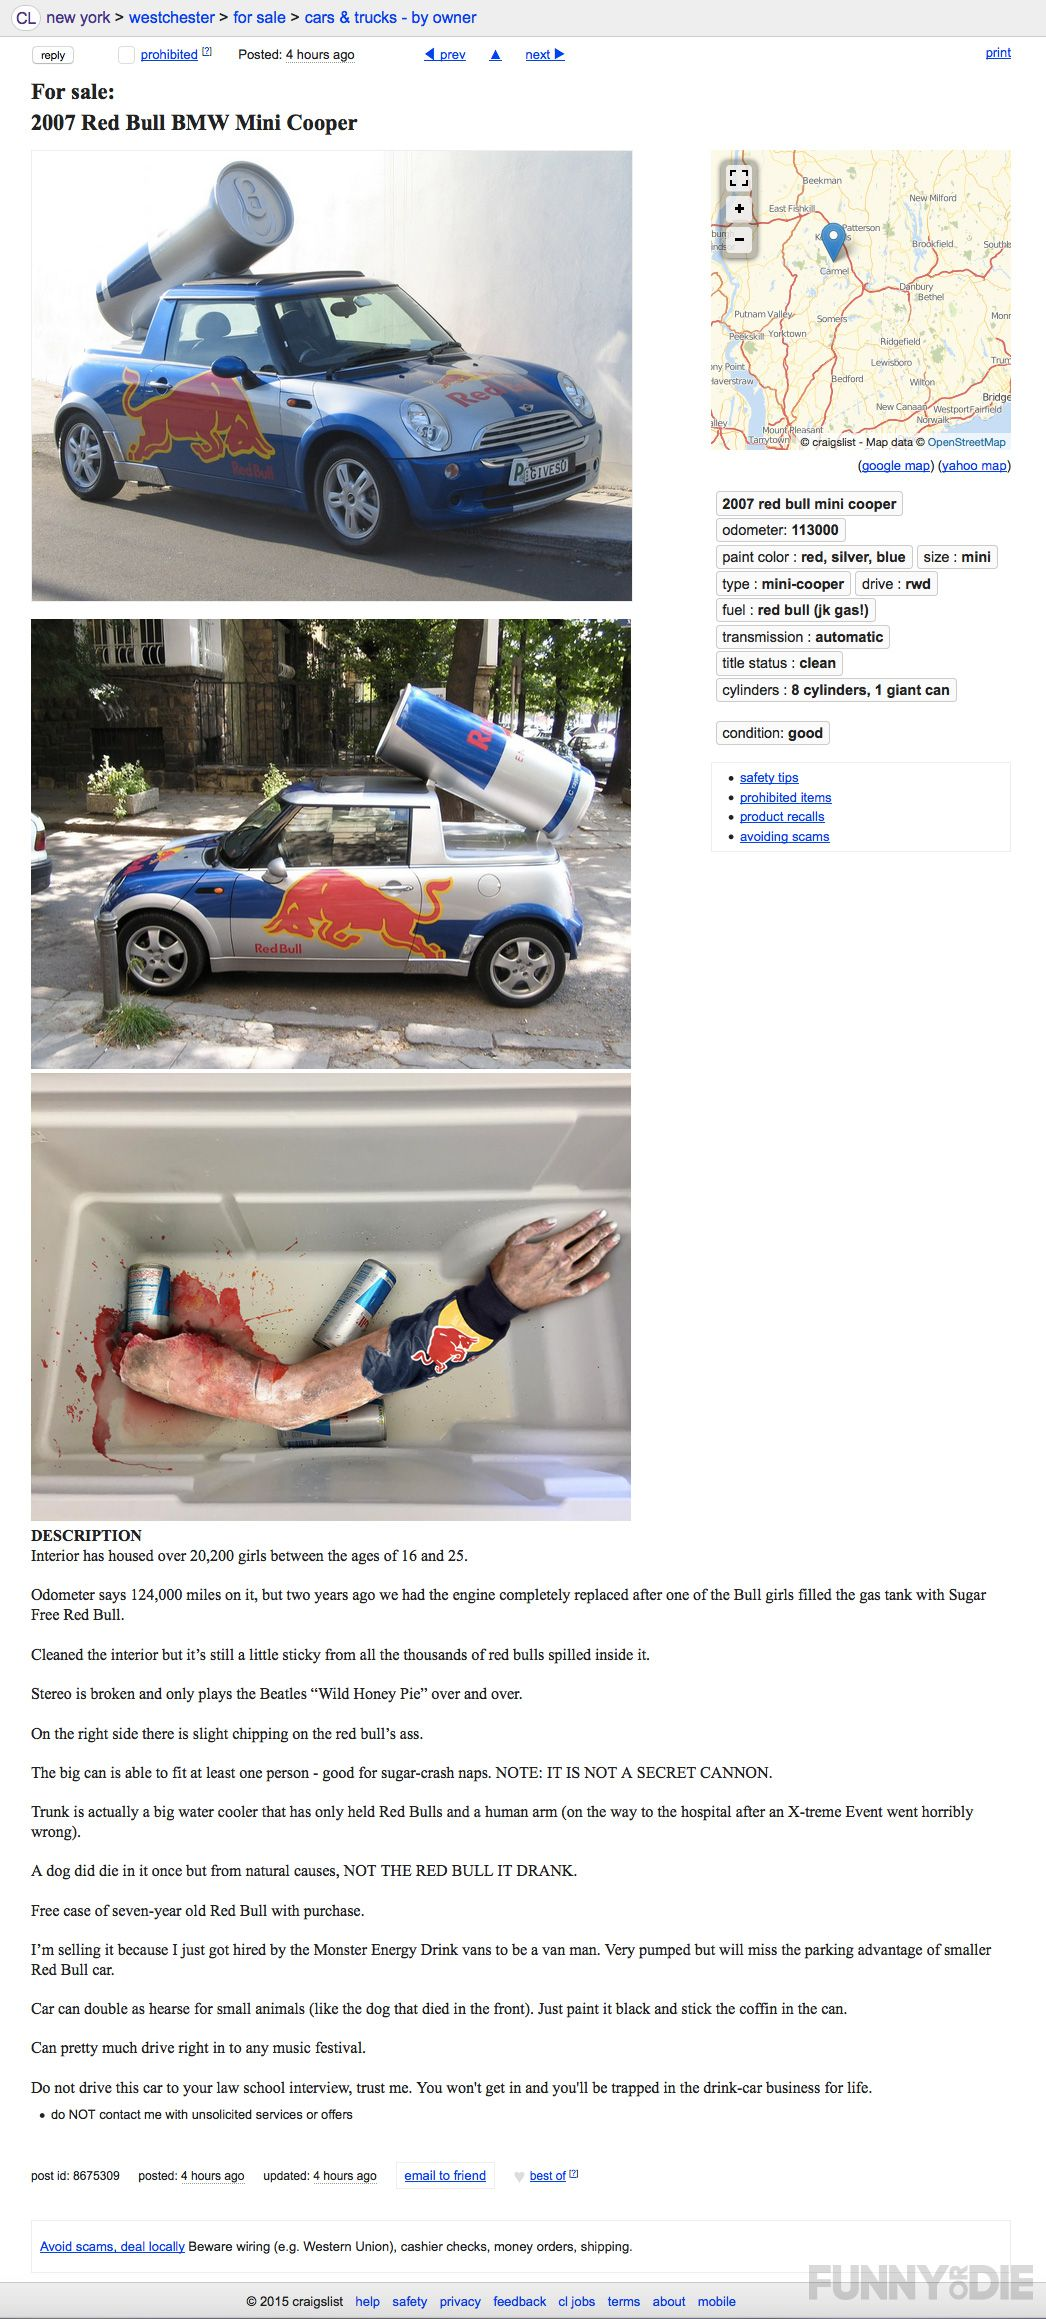 Craigslist Ad For A Red Bull Car